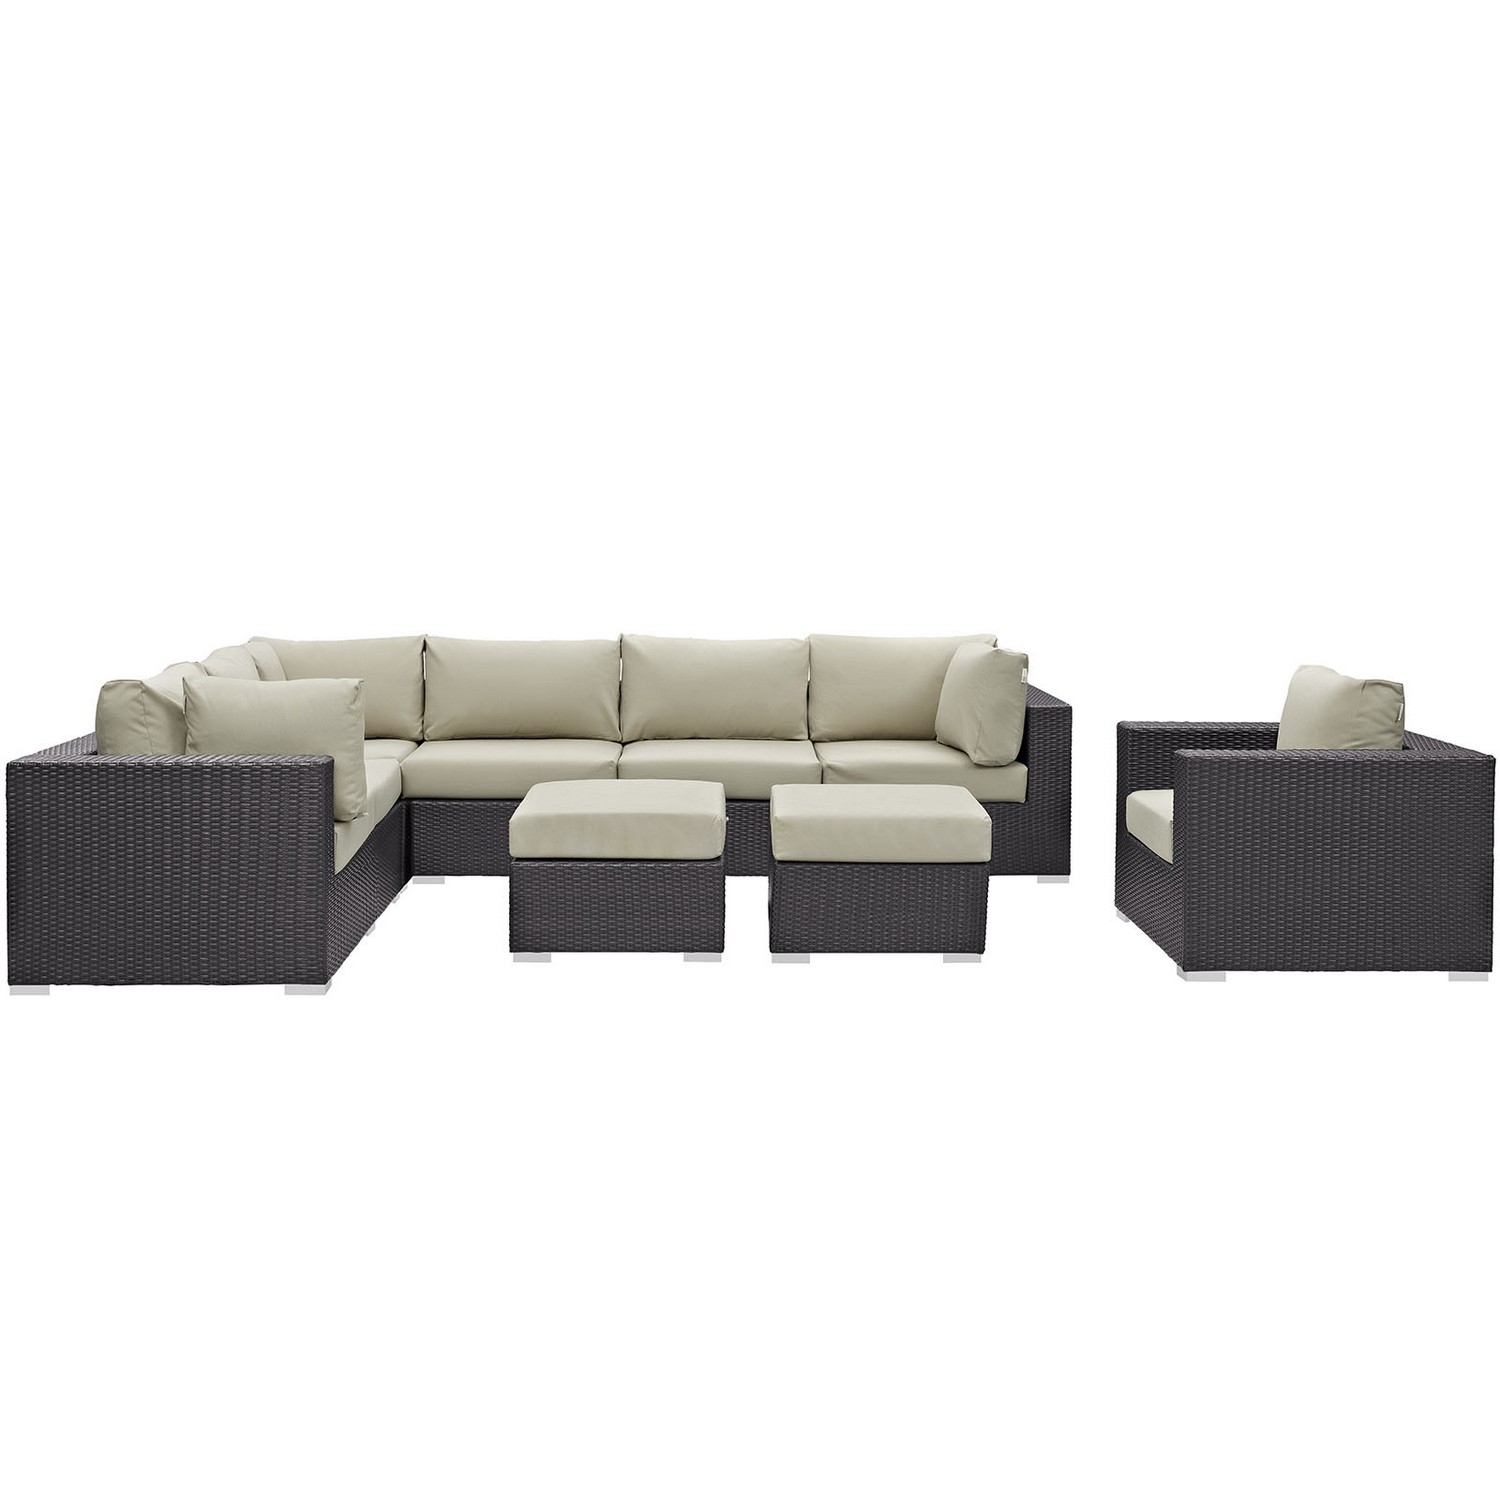 Modway Convene 9 Piece Outdoor Patio Sectional Set - Espresso Beige